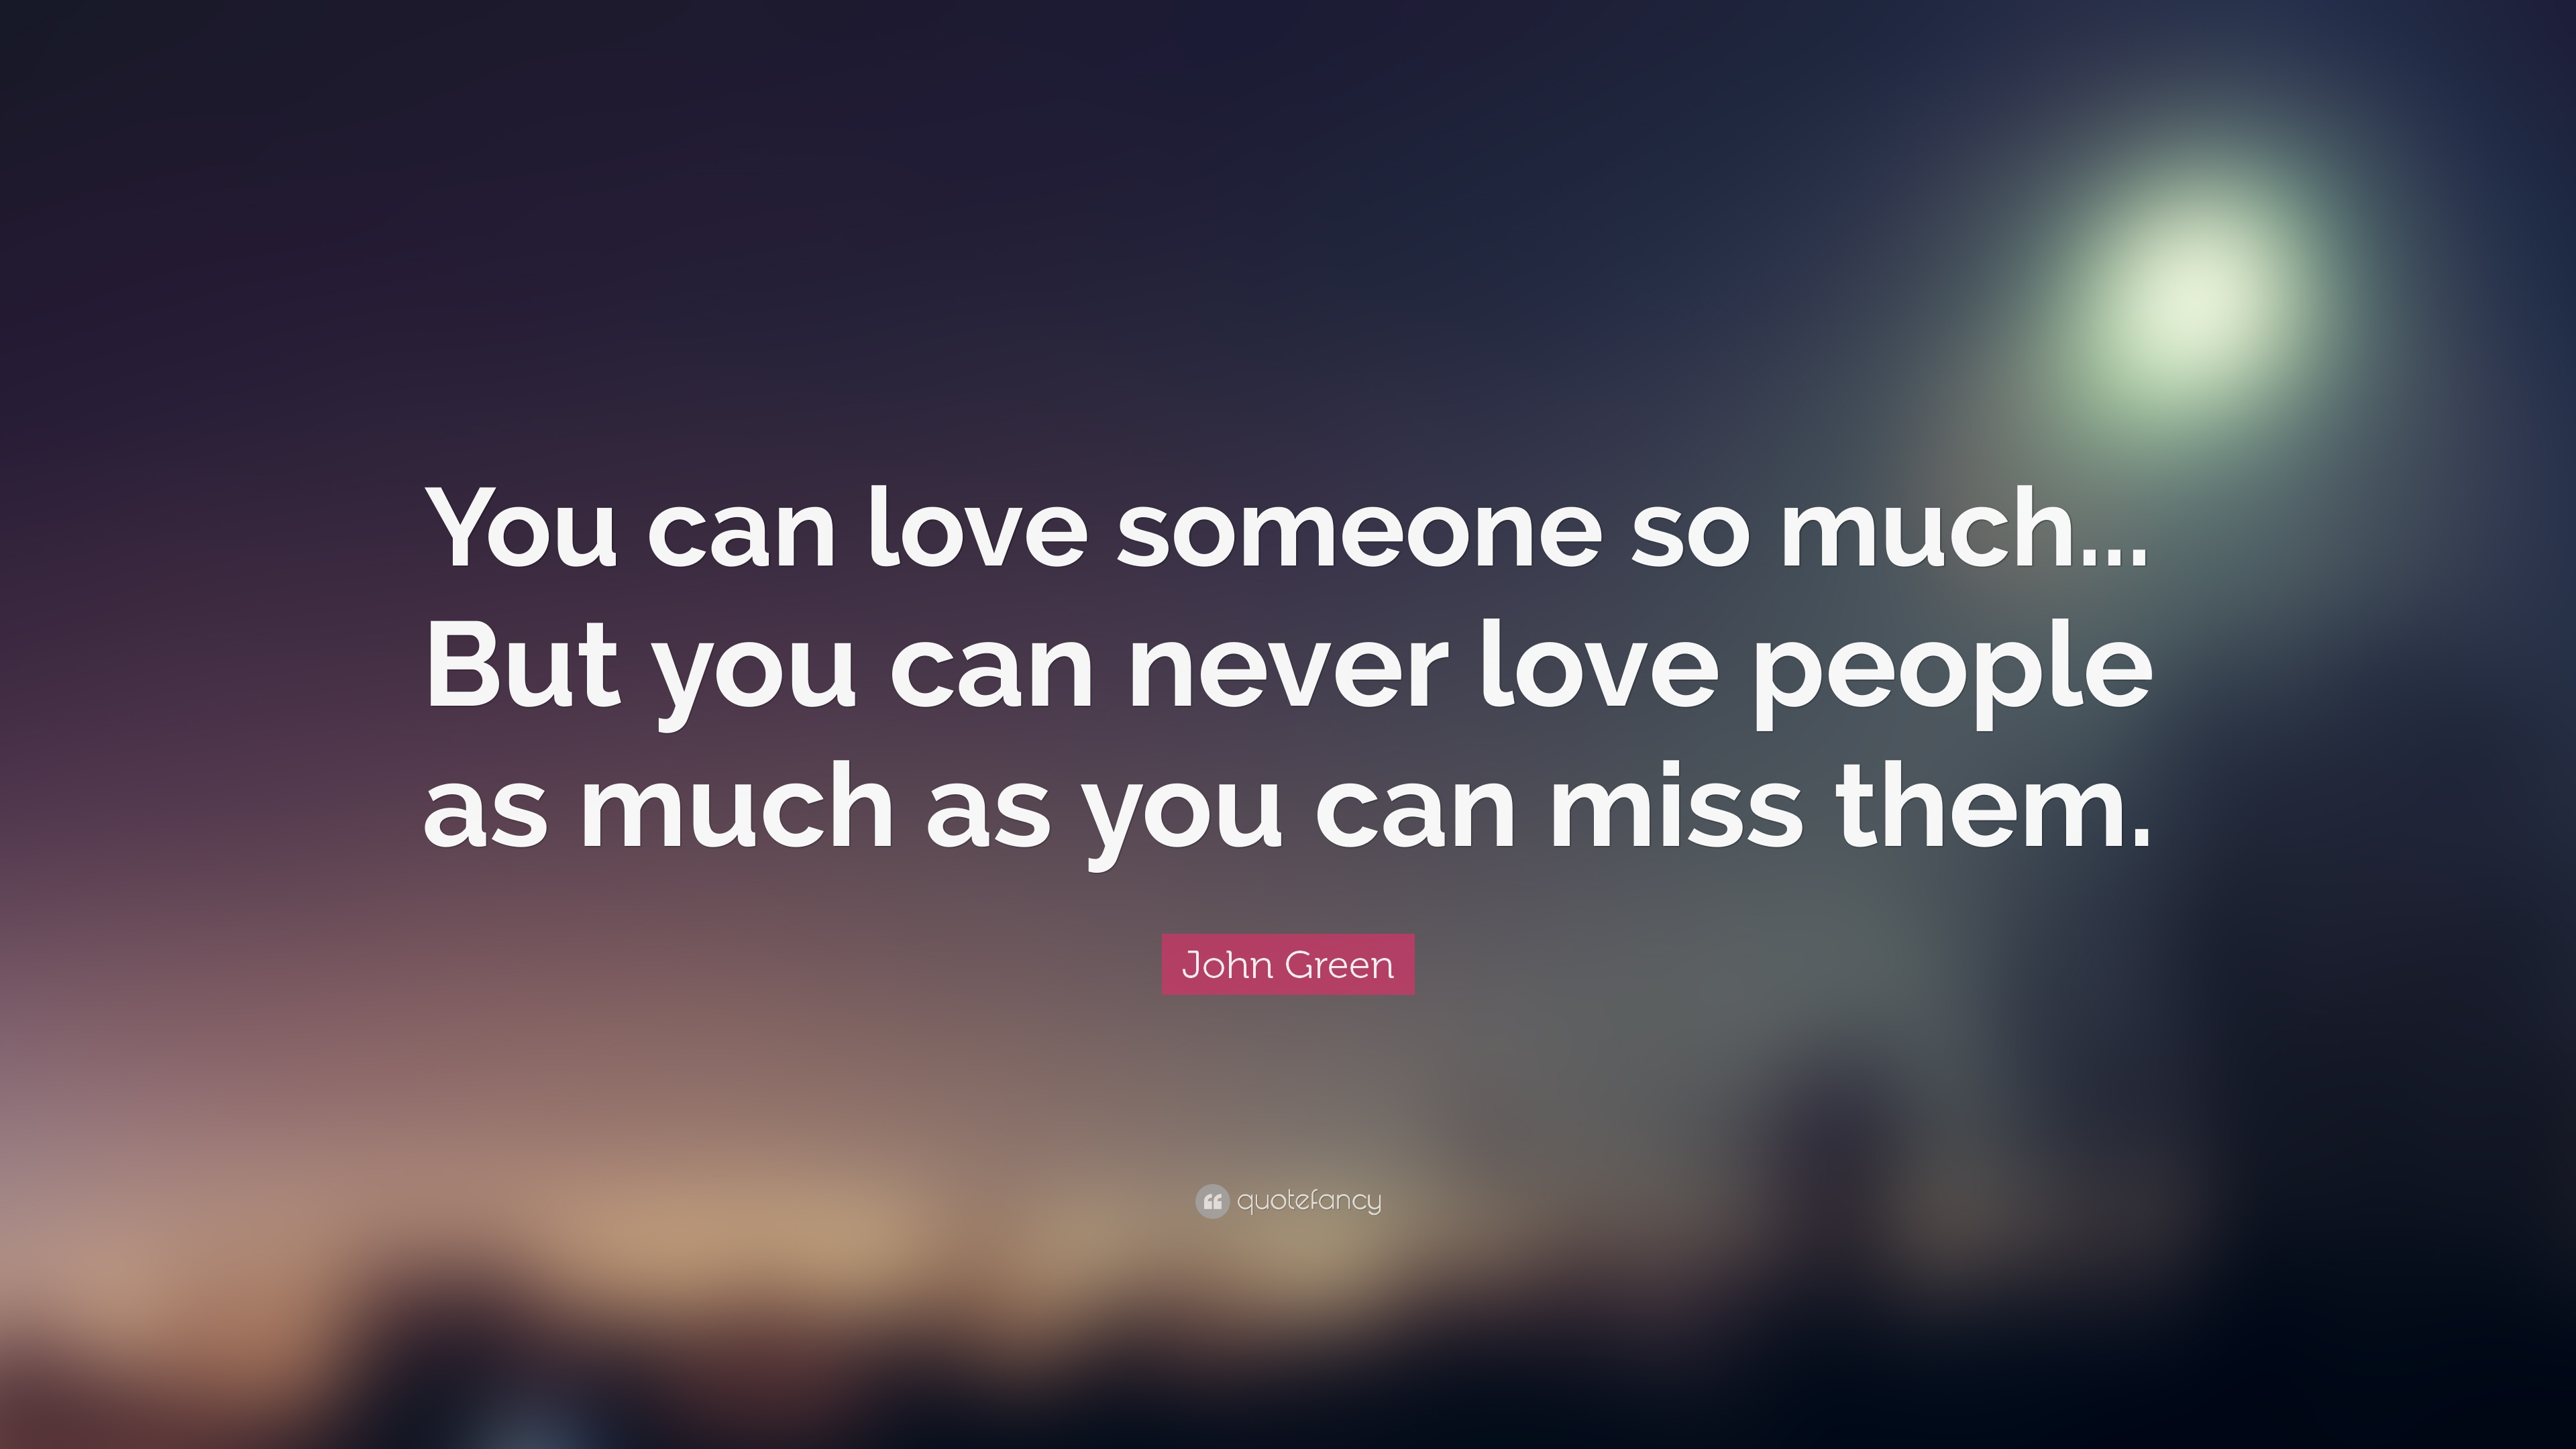 Quotes Source · John Green Quote You can love someone so much But you